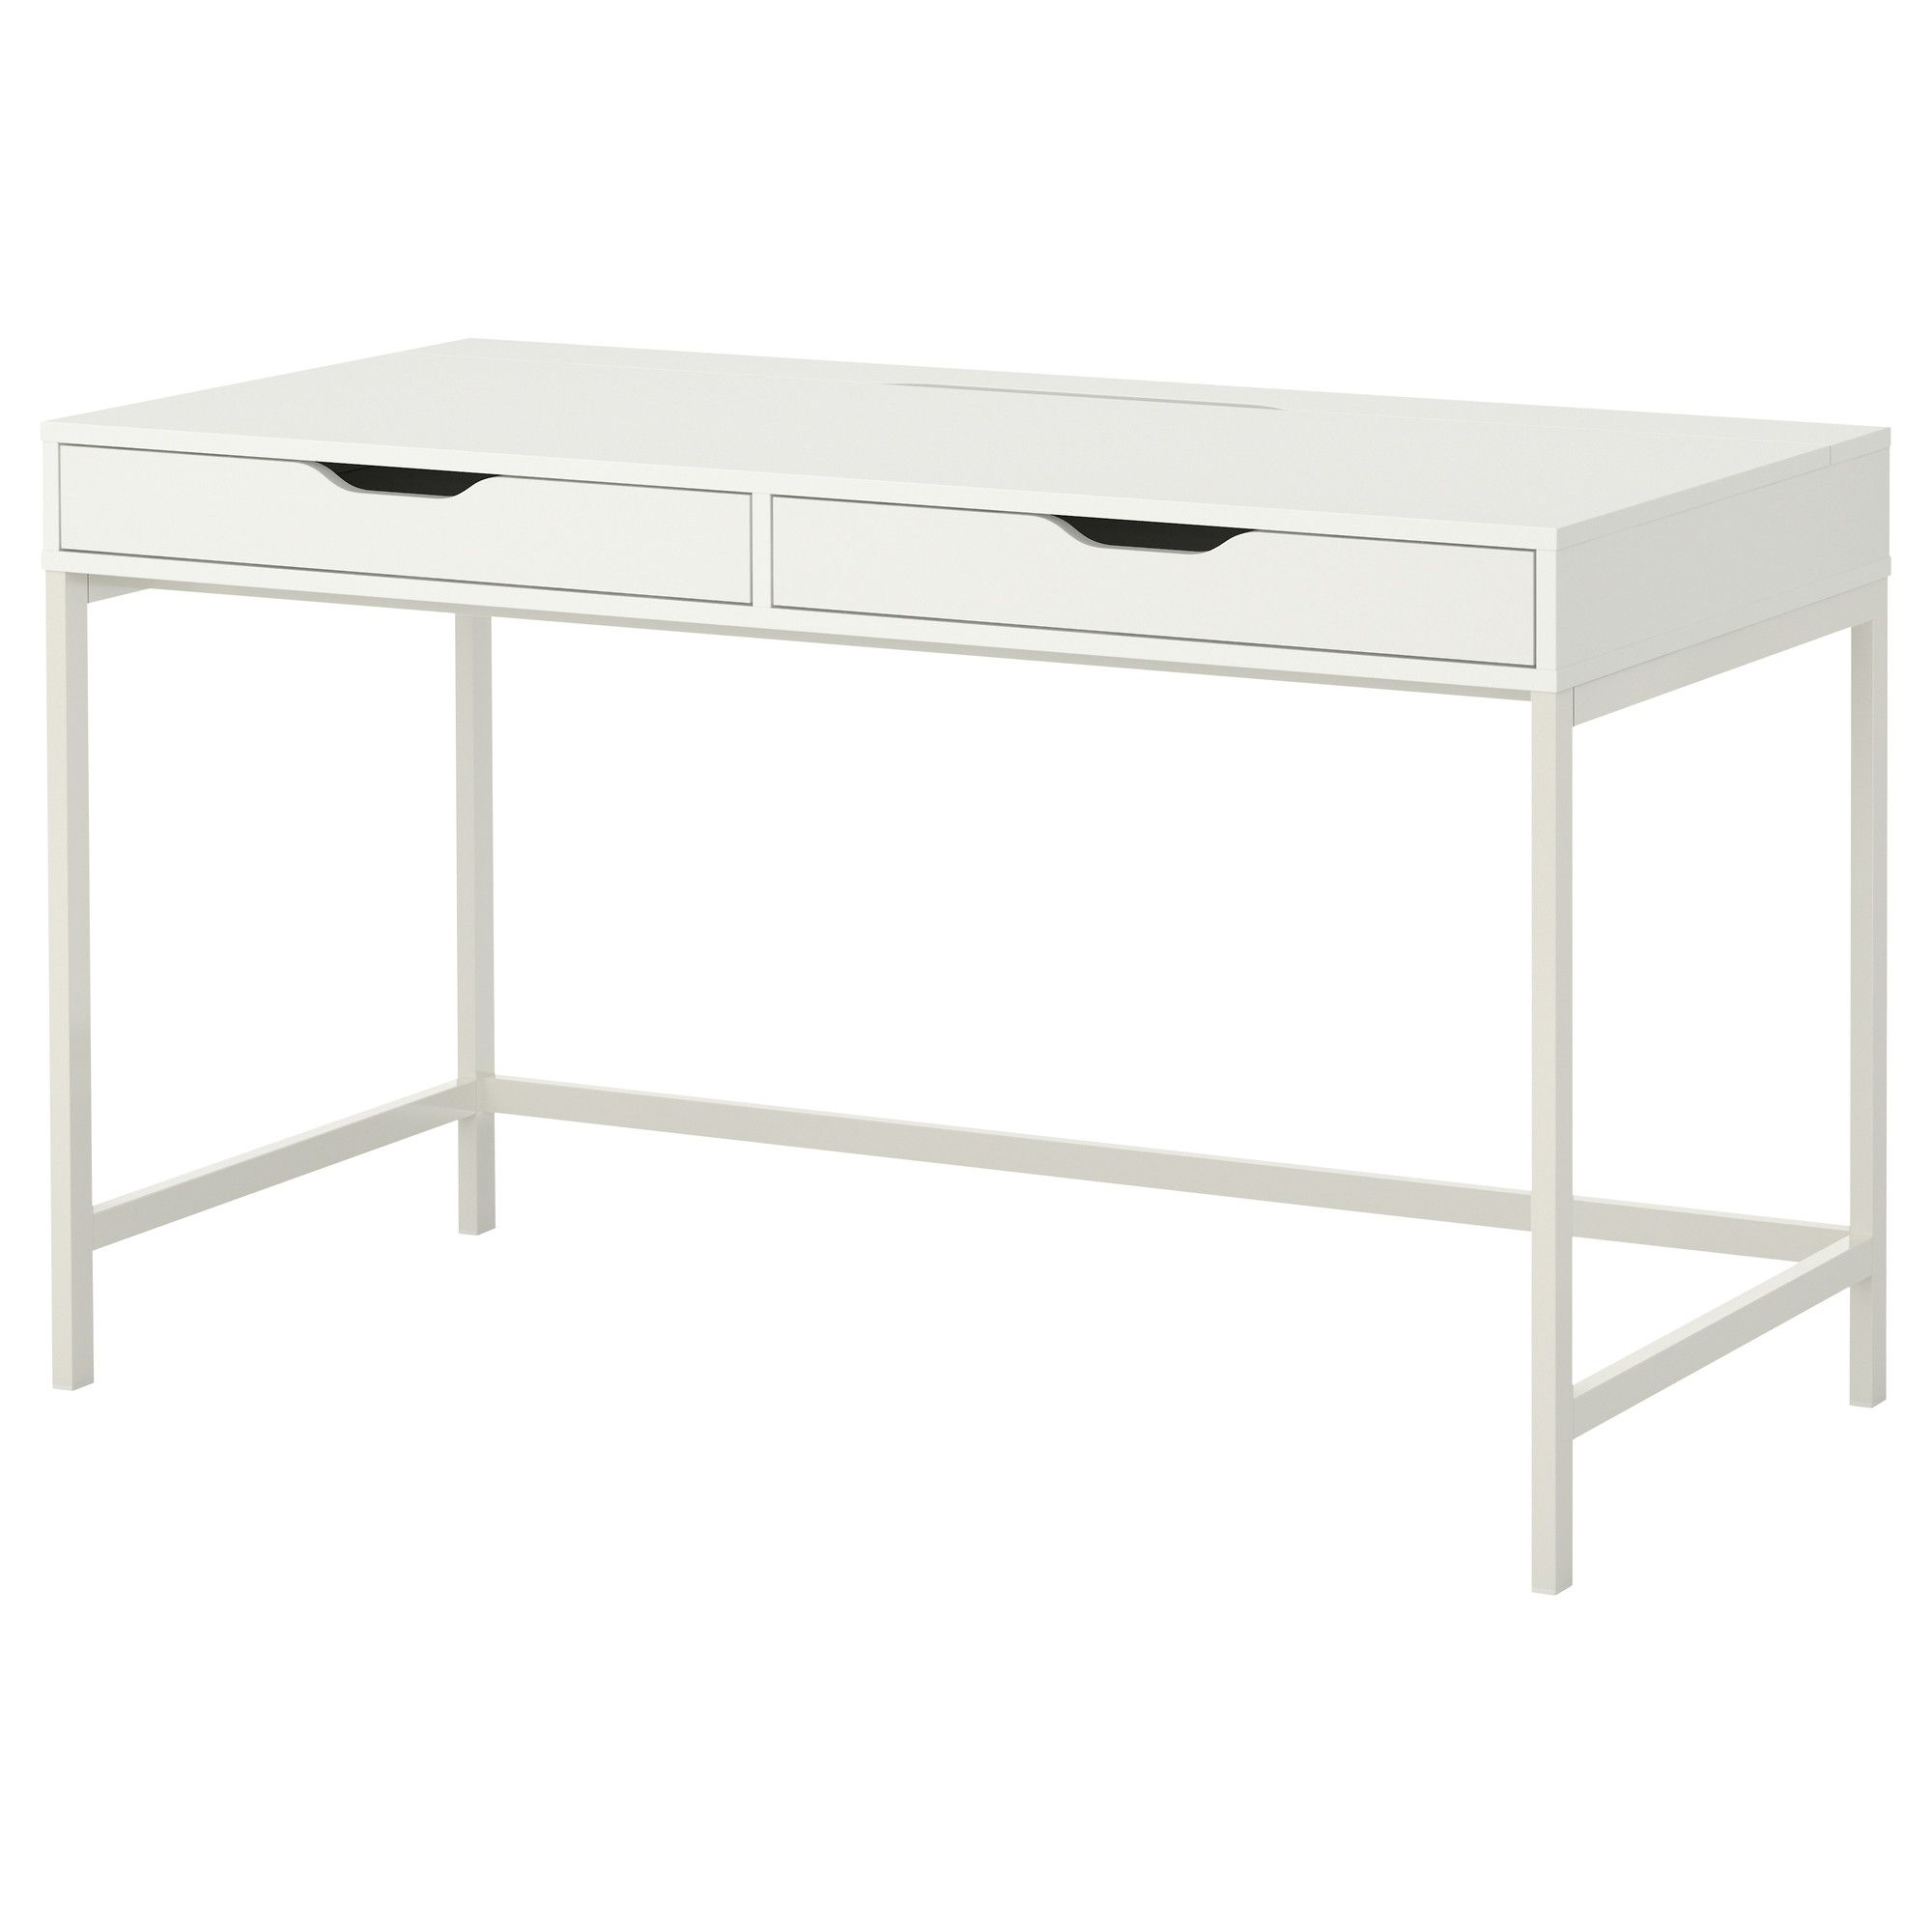 Alex Desk Gray 51 5 8x23 5 8 Ikea Ikea Alex Desk Alex Desk Desk With Drawers